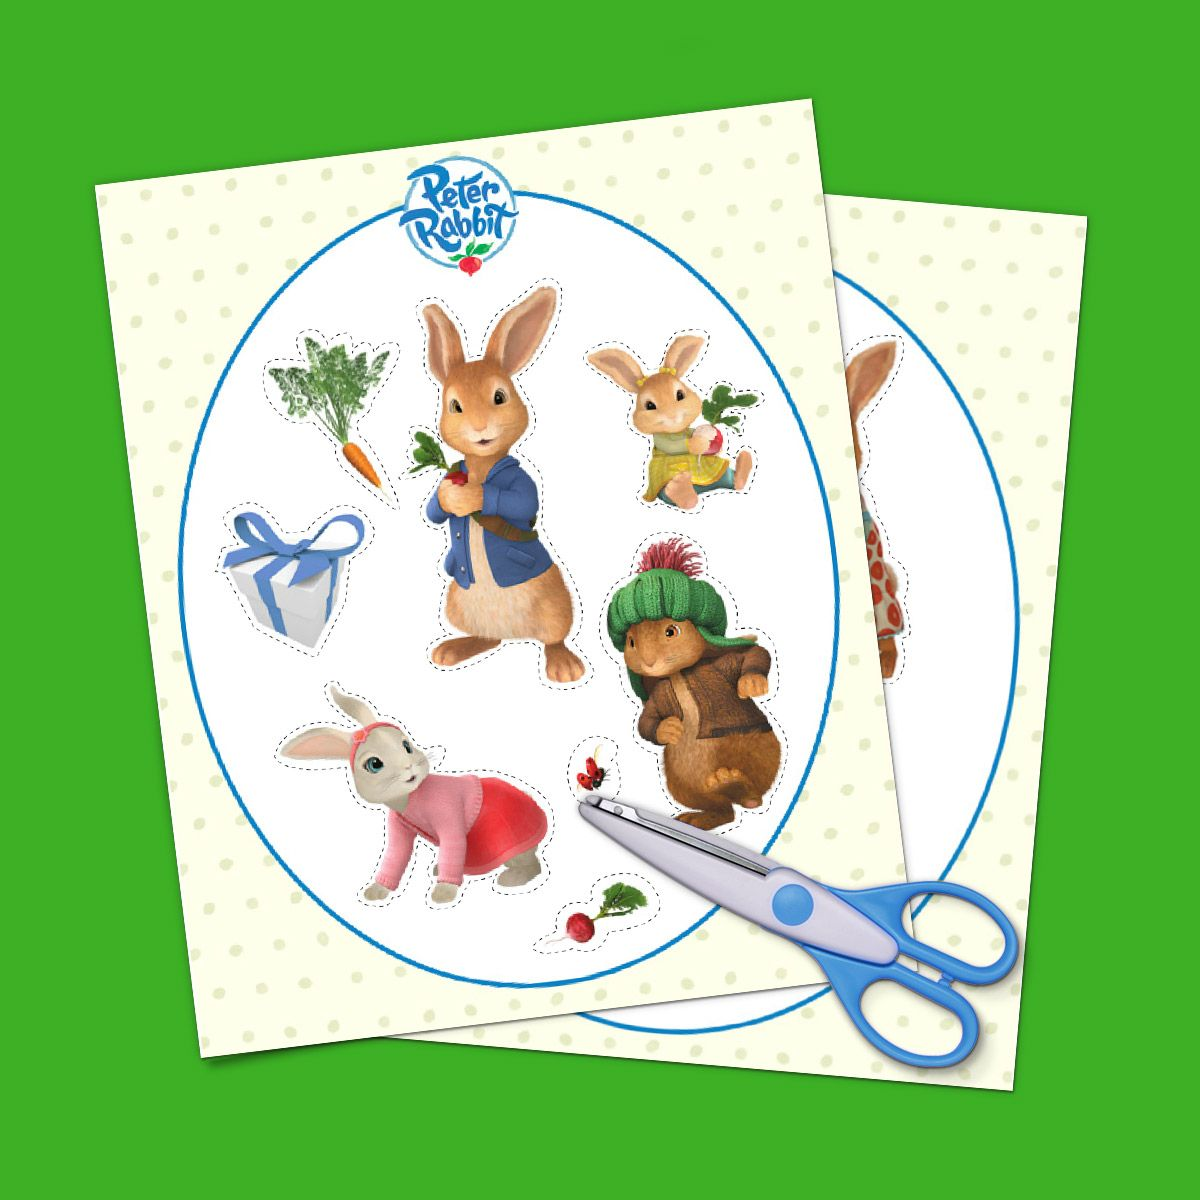 Peter Rabbit Birthday Party Goody Bag Stickers